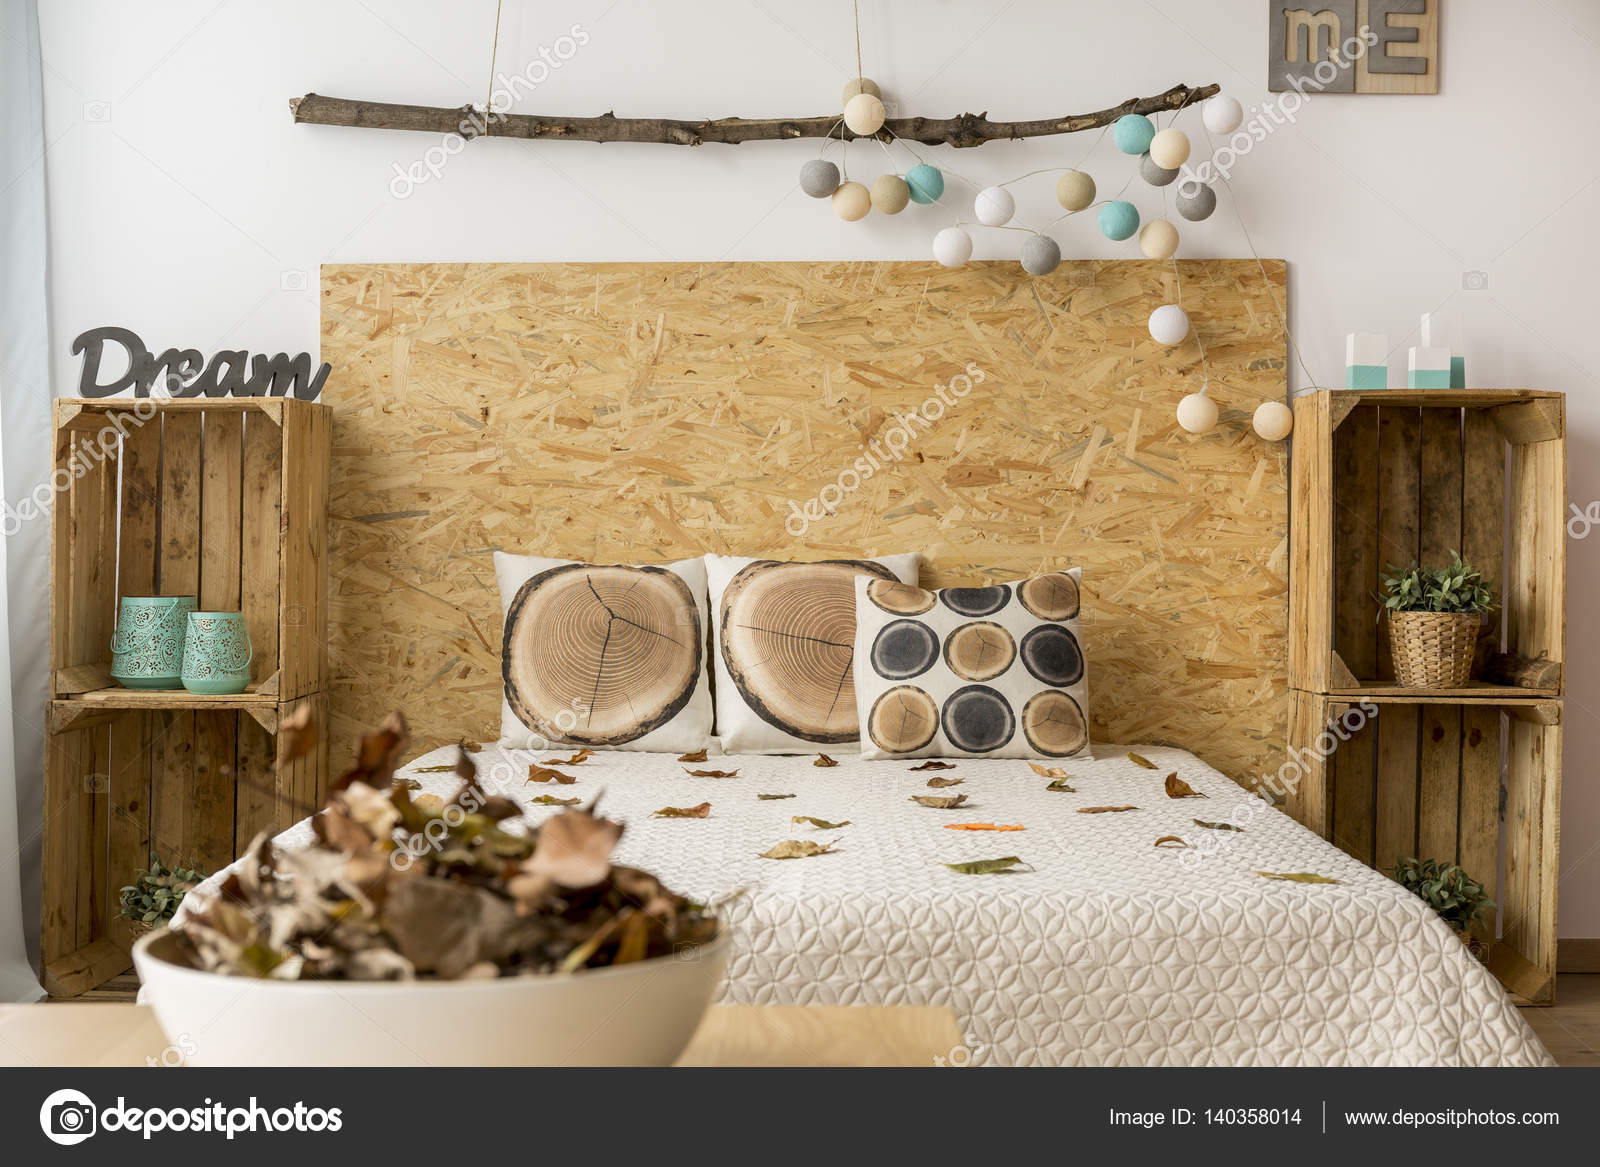 Comfortable Bed With DIY Bedside Cabinets U2014 Stock Photo